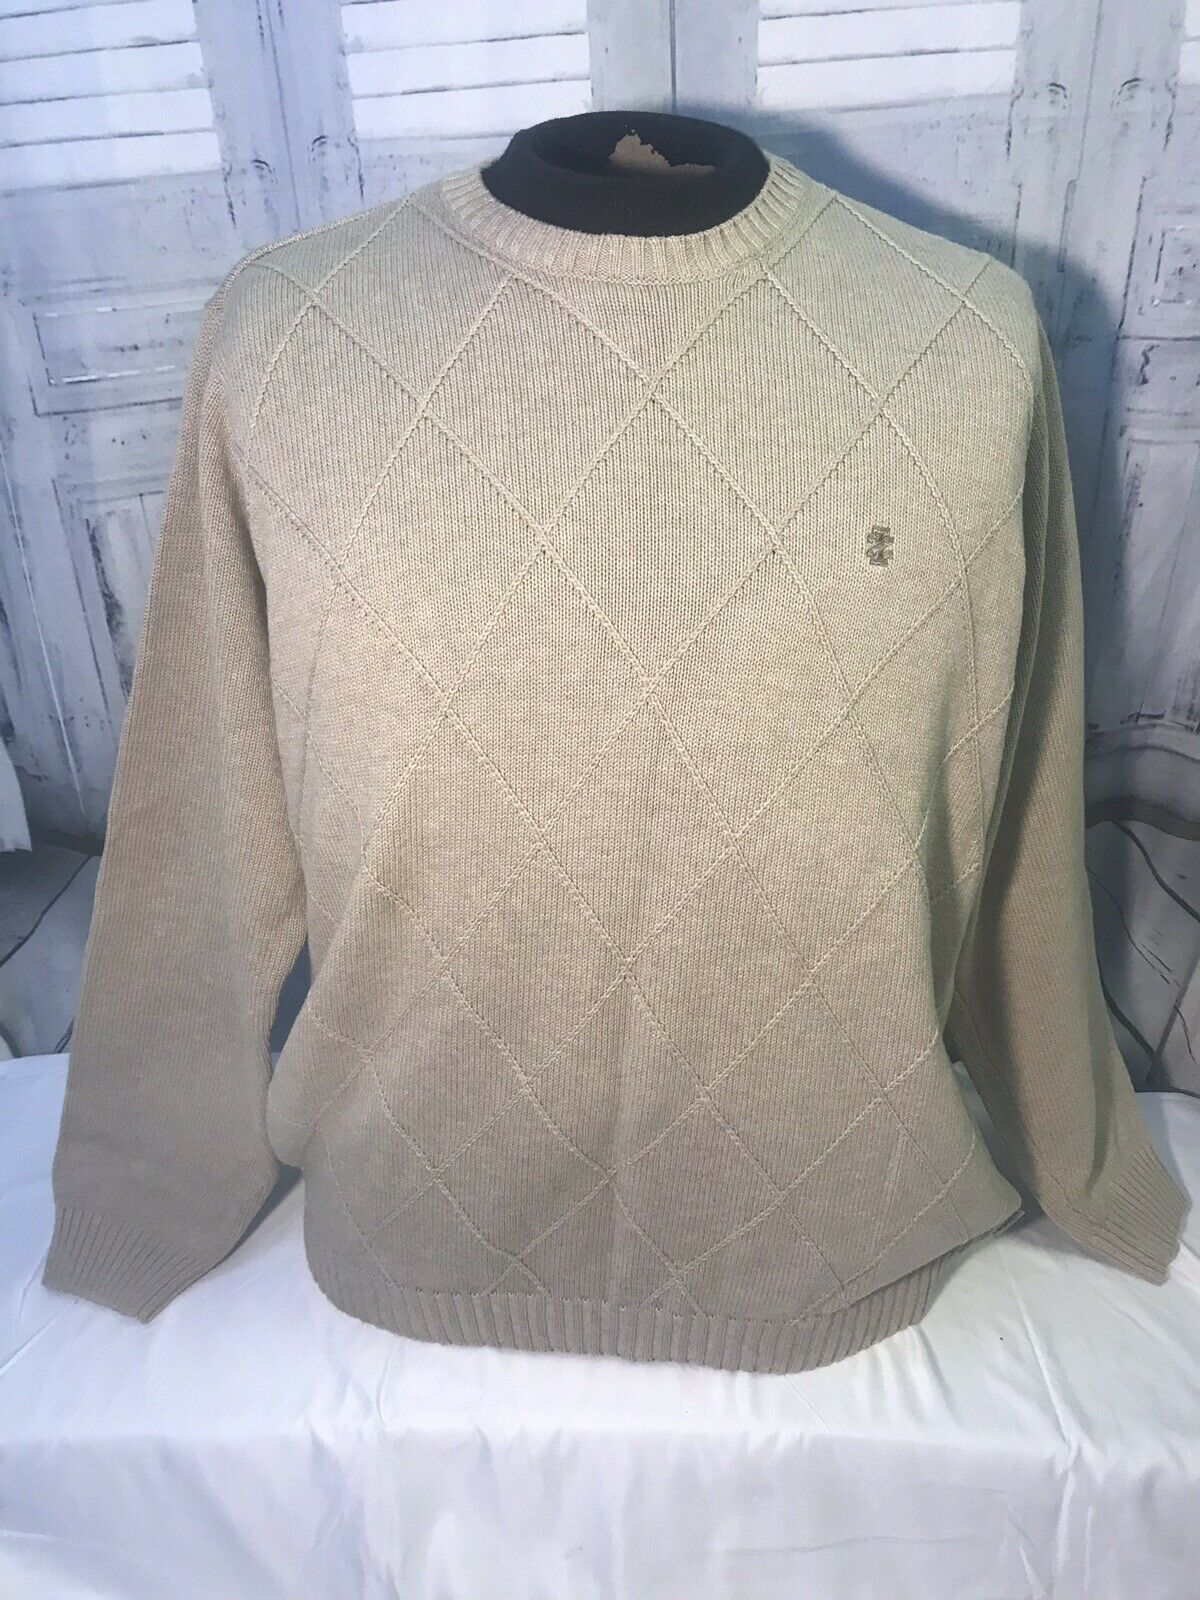 IZOD Men's 100% Cotton Sweater Large Beige Quality  NWOT